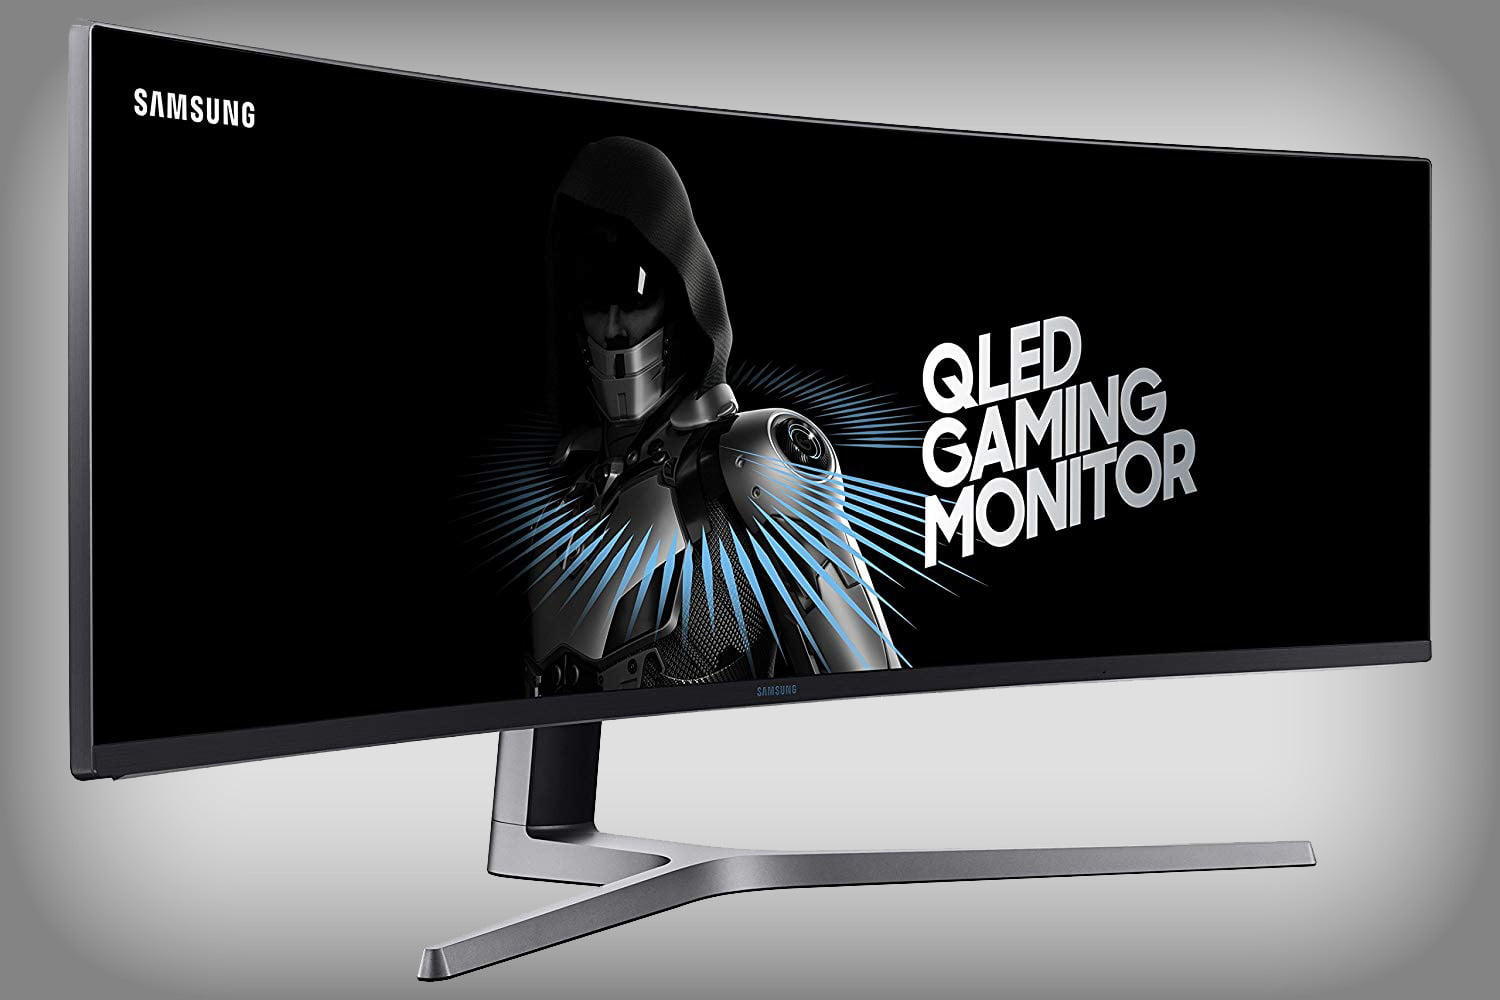 Cyber Week Monitor Deals: Score a New Display on the Cheap